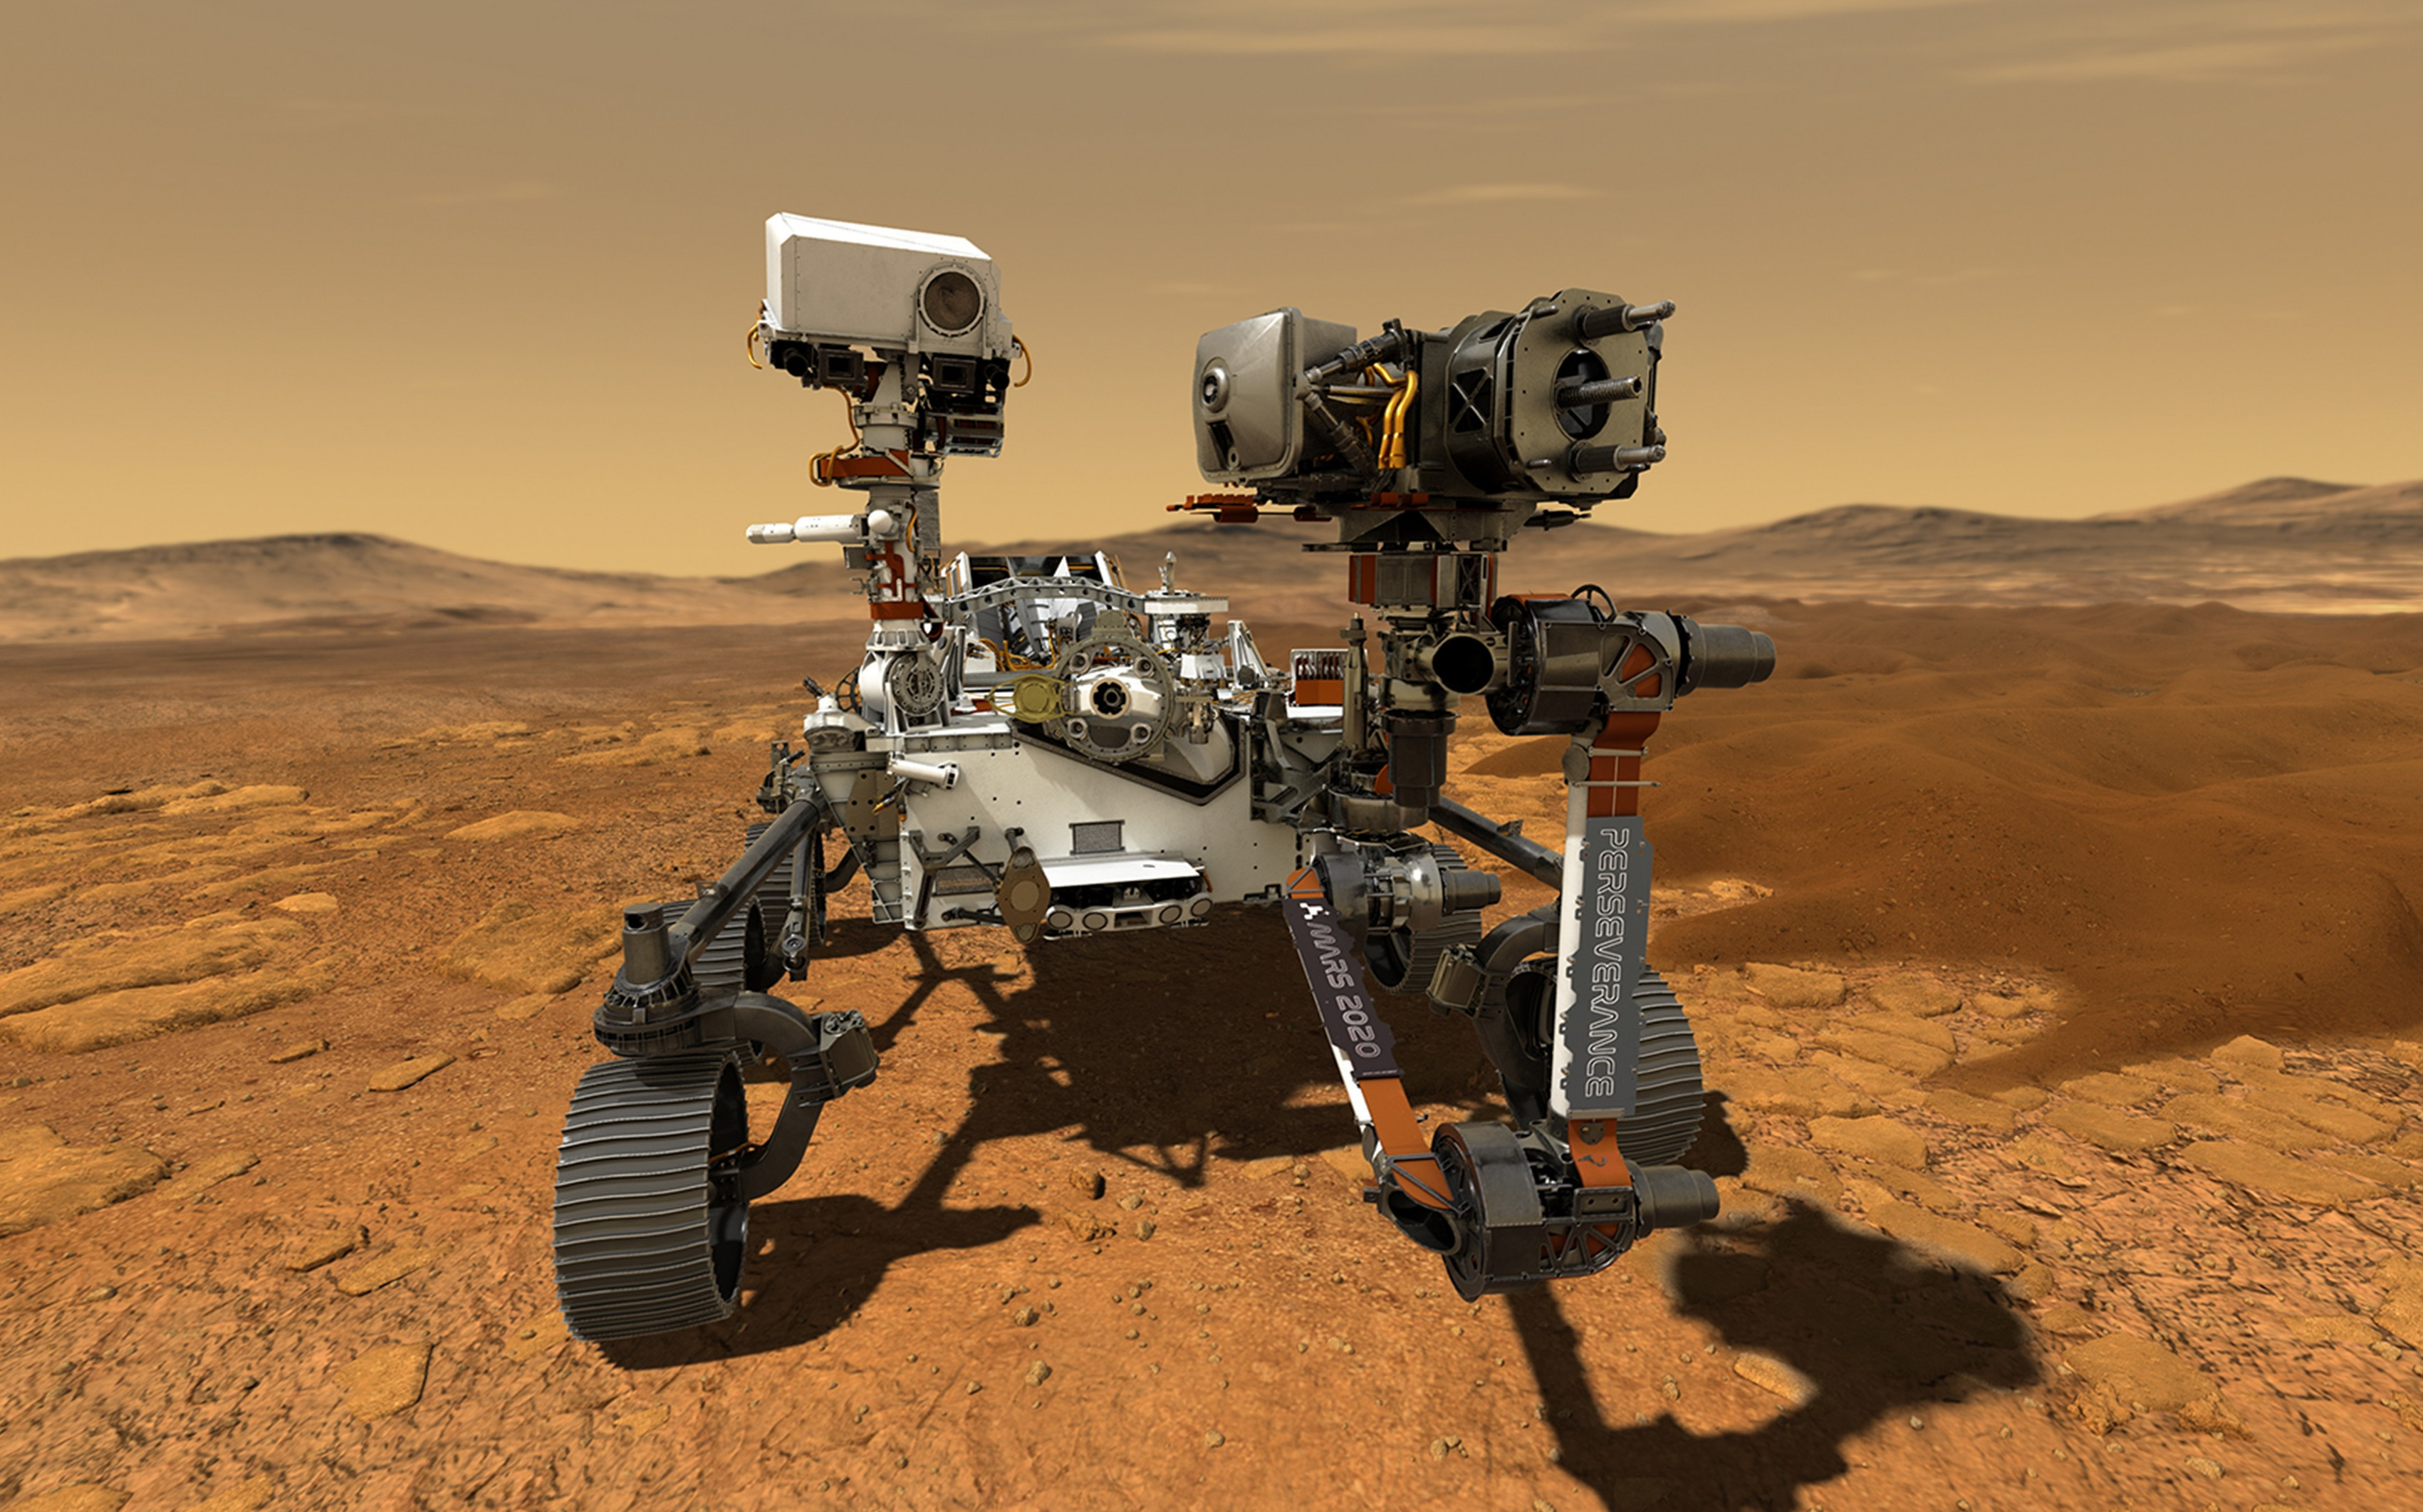 Perseverance will be on the Red Planet for at least one Mars year - the equivalent of two Earth years